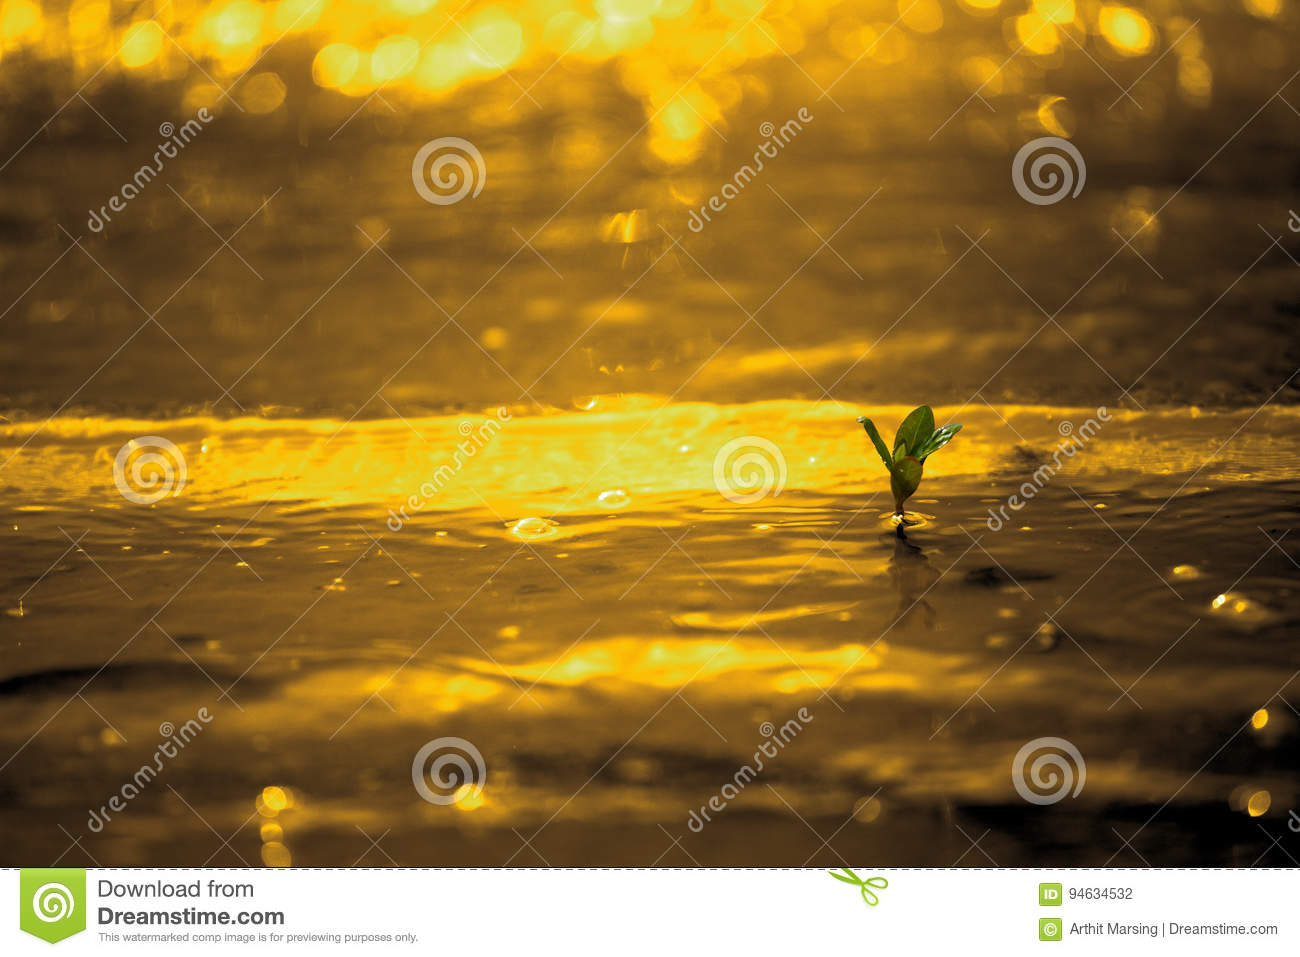 A little green plant about to impact by golden color water wave on golden background.